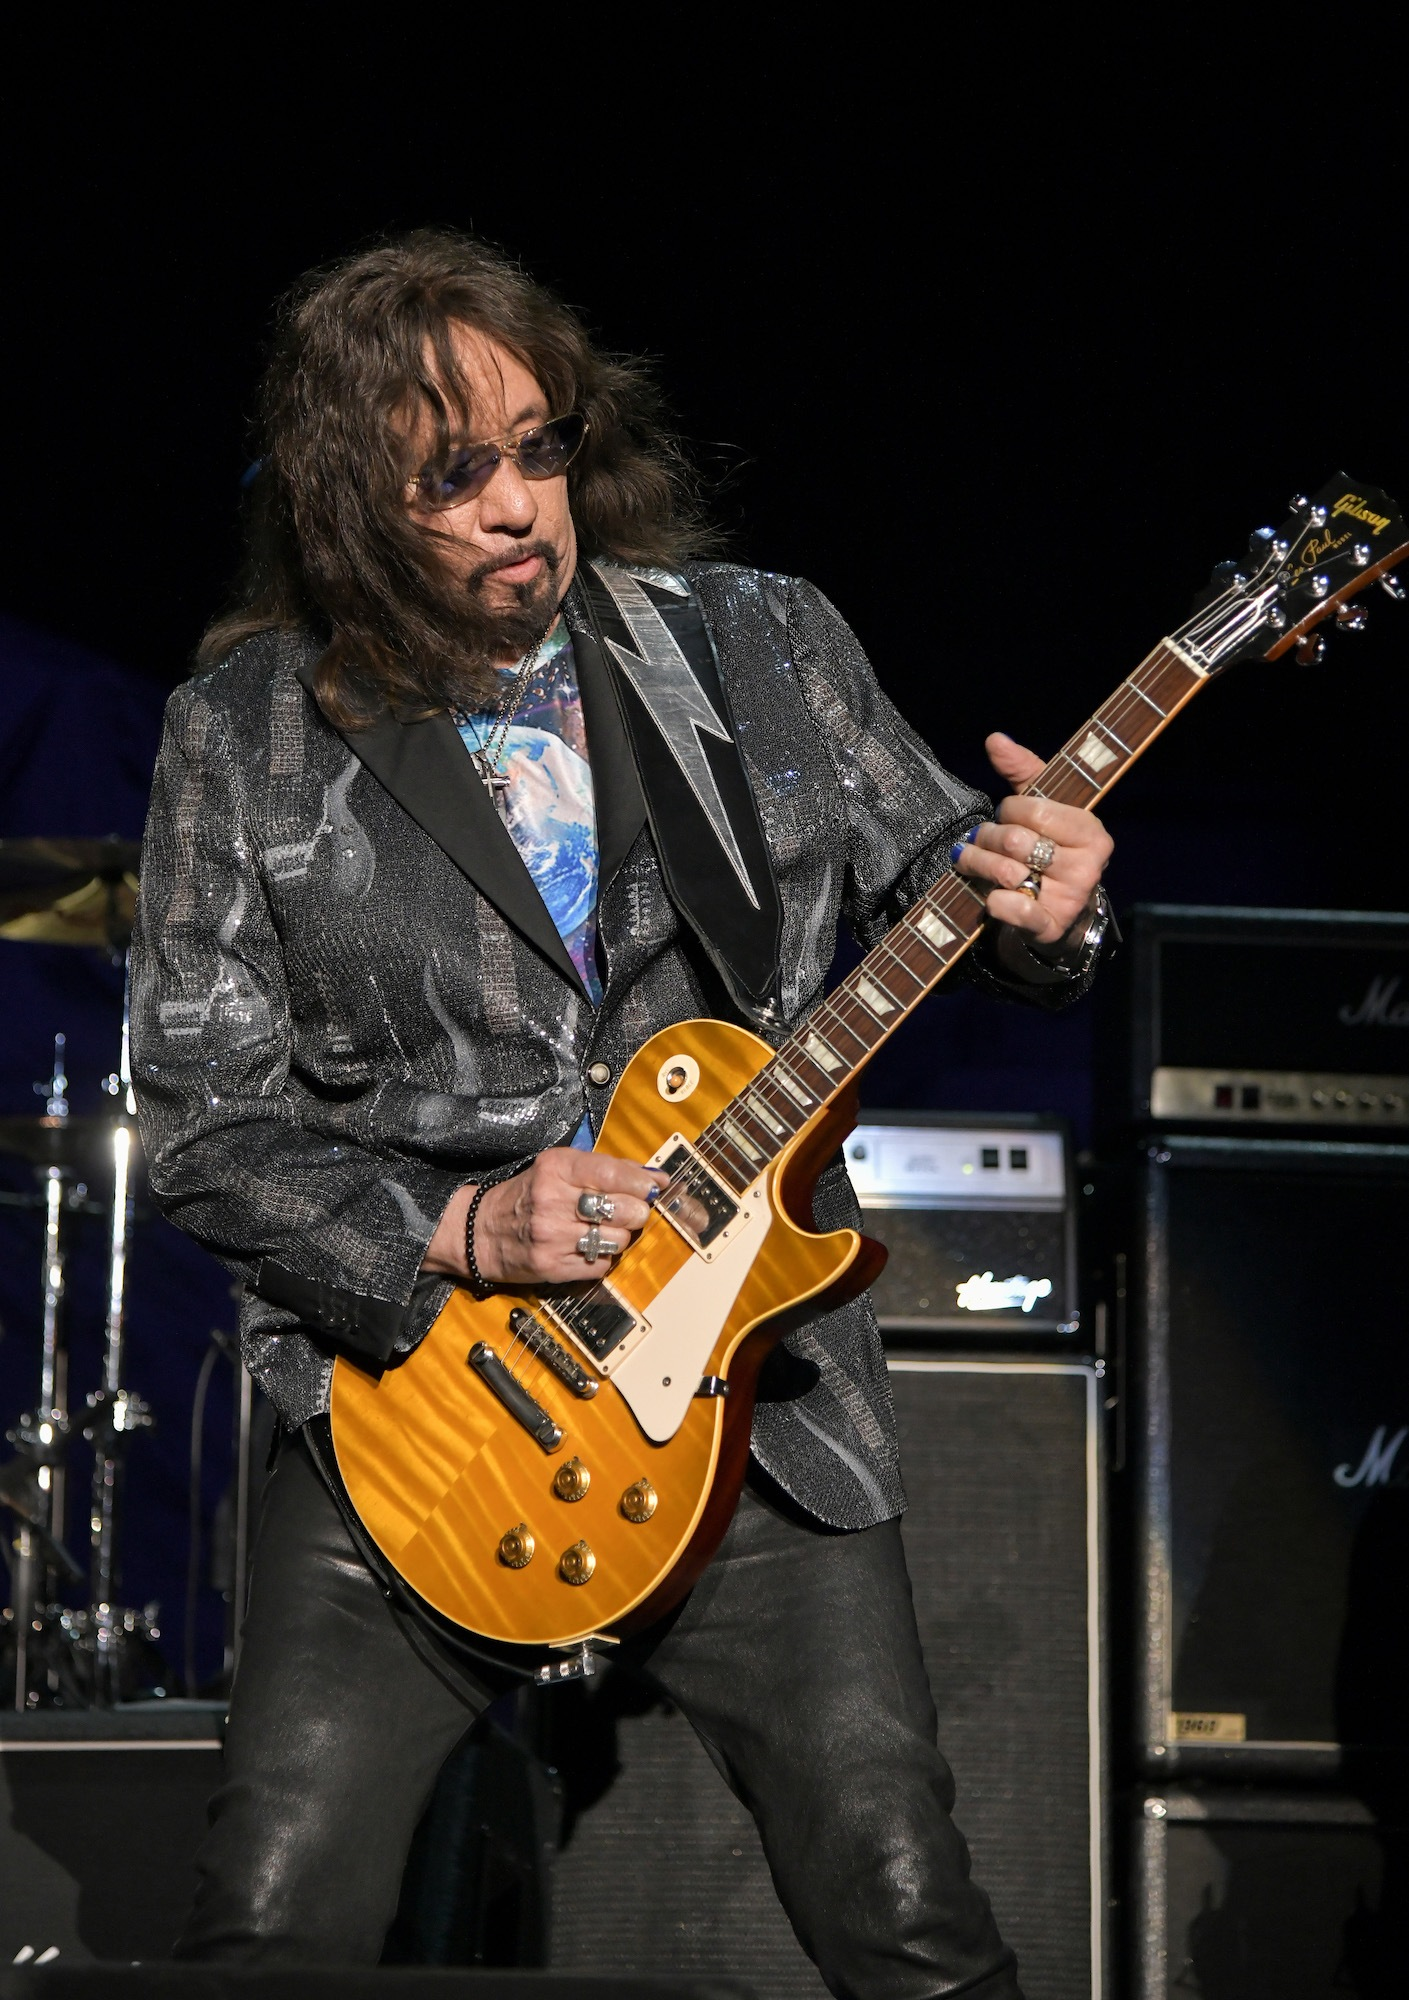 Ace Frehley Live at Huntington Bank Pavilion [GALLERY] 18